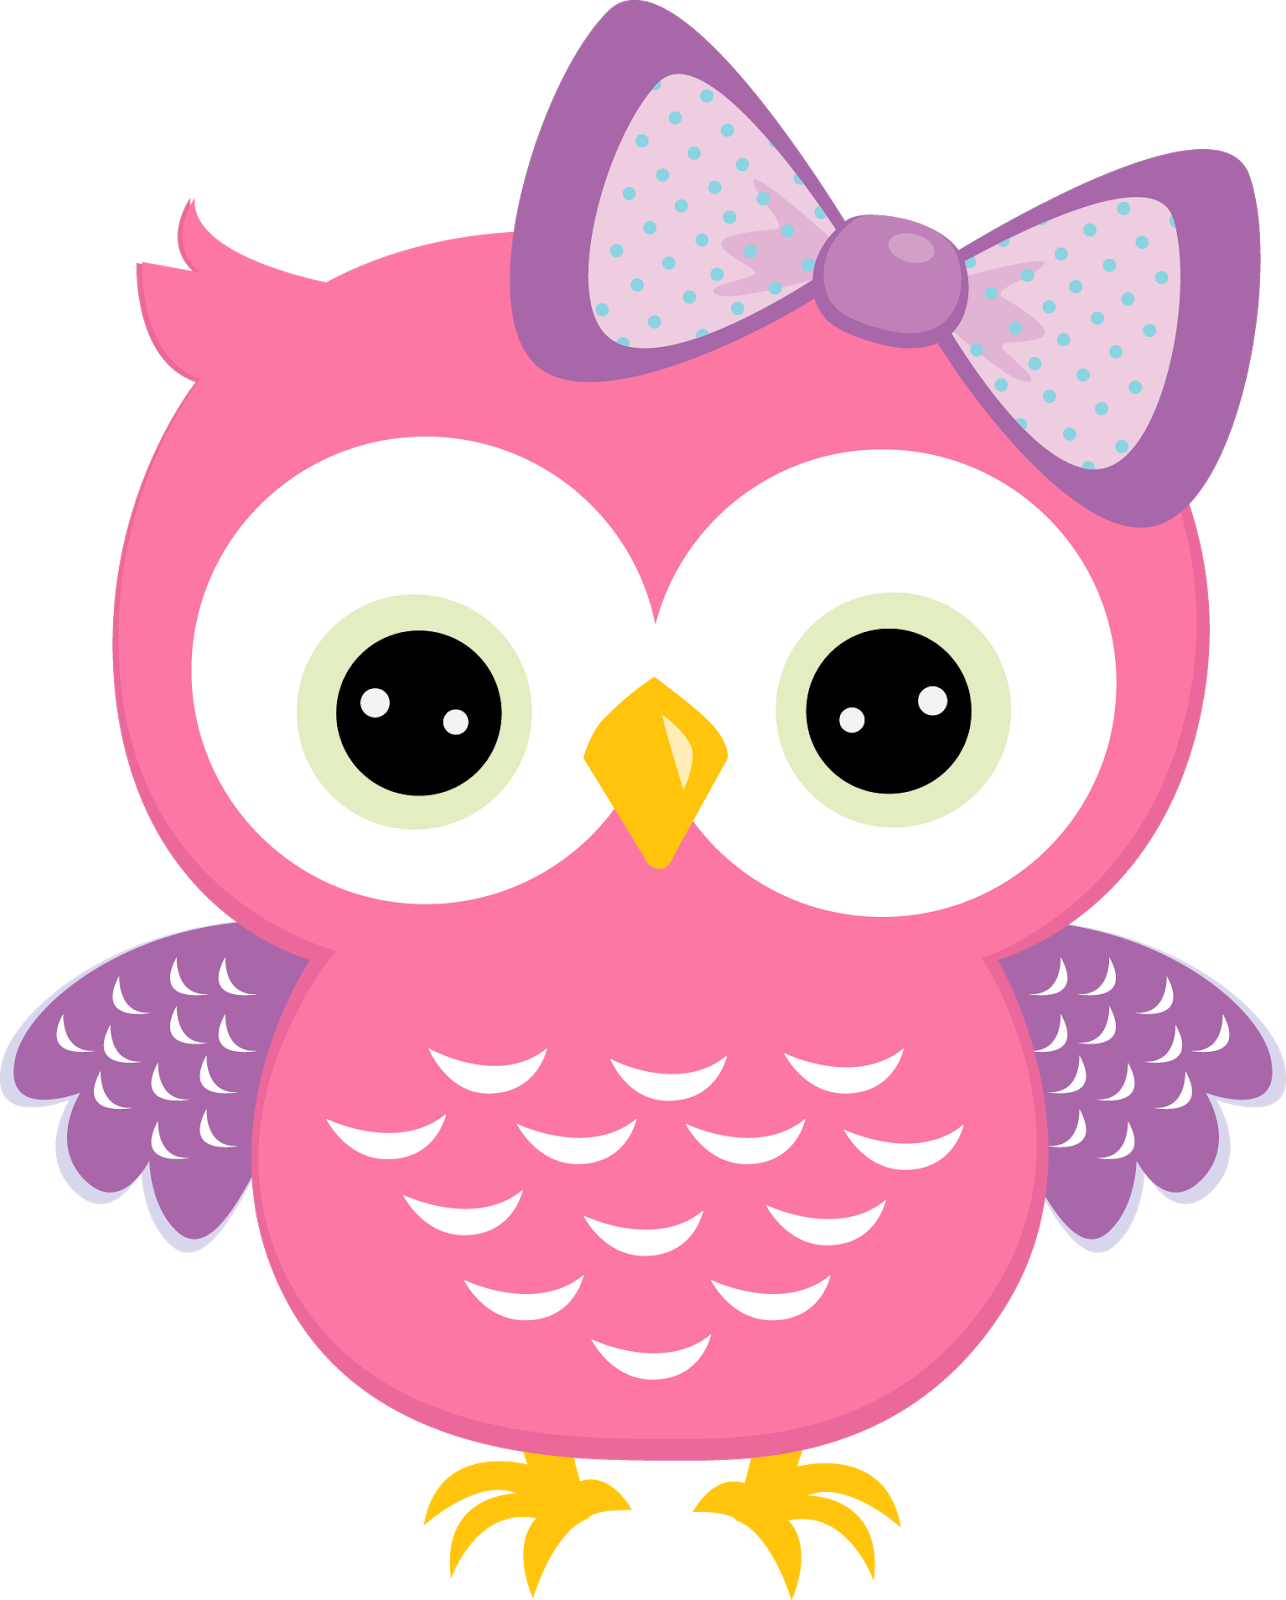 clipart de b u00fahos de colores oh my 15 a u00f1os clipart of owls on a branch clipart of owls dressed up for halloween